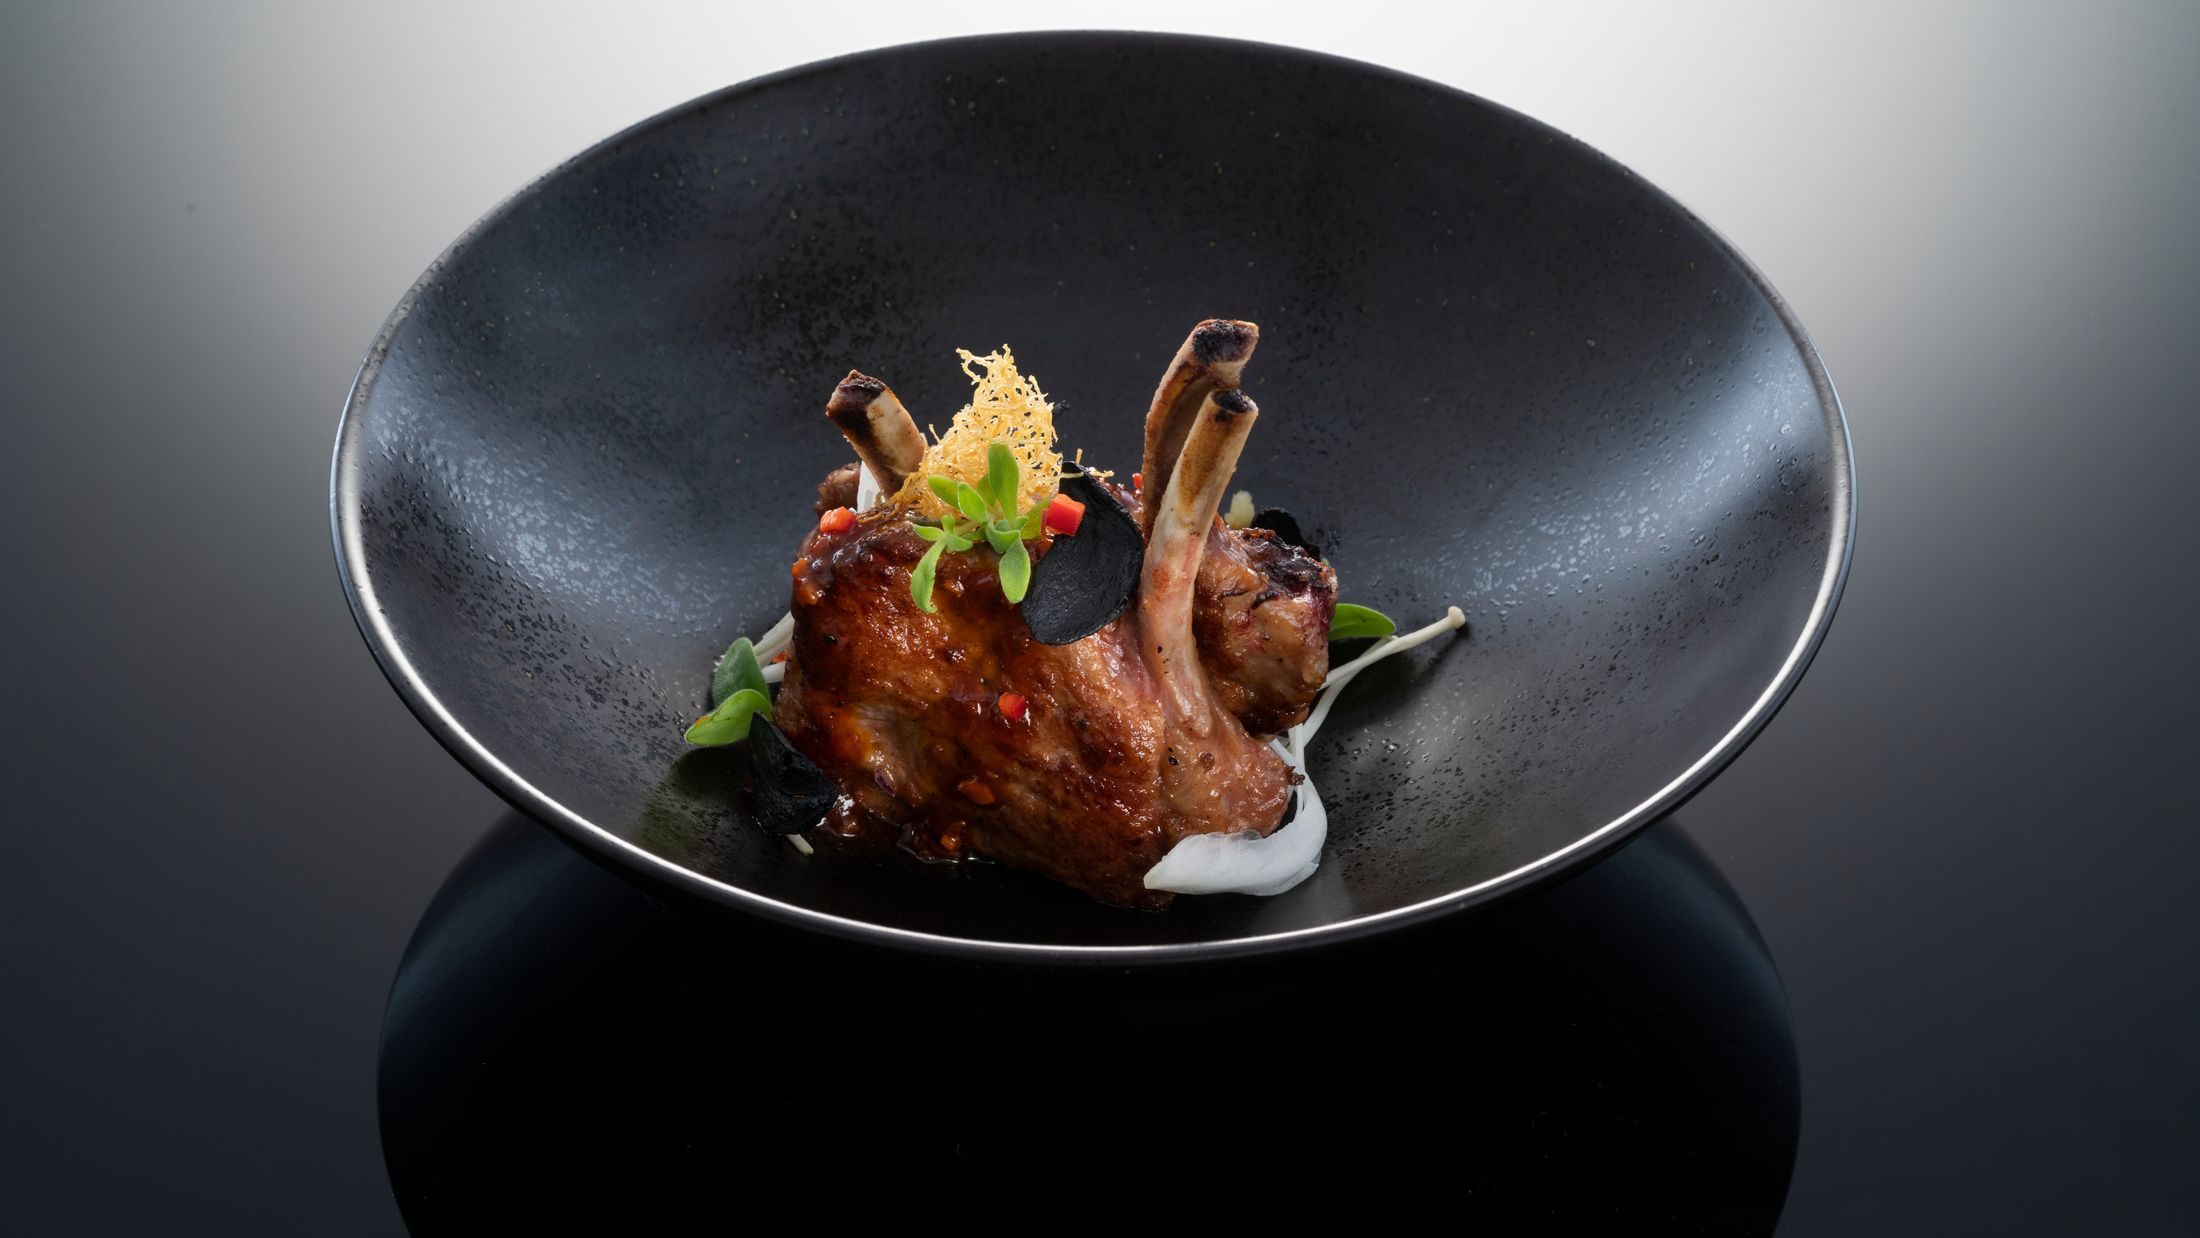 Hakkasan food shoot, Hakkasan Hanway Place. Wok-fry Australian lamb rack with black garlic: Dubai dish